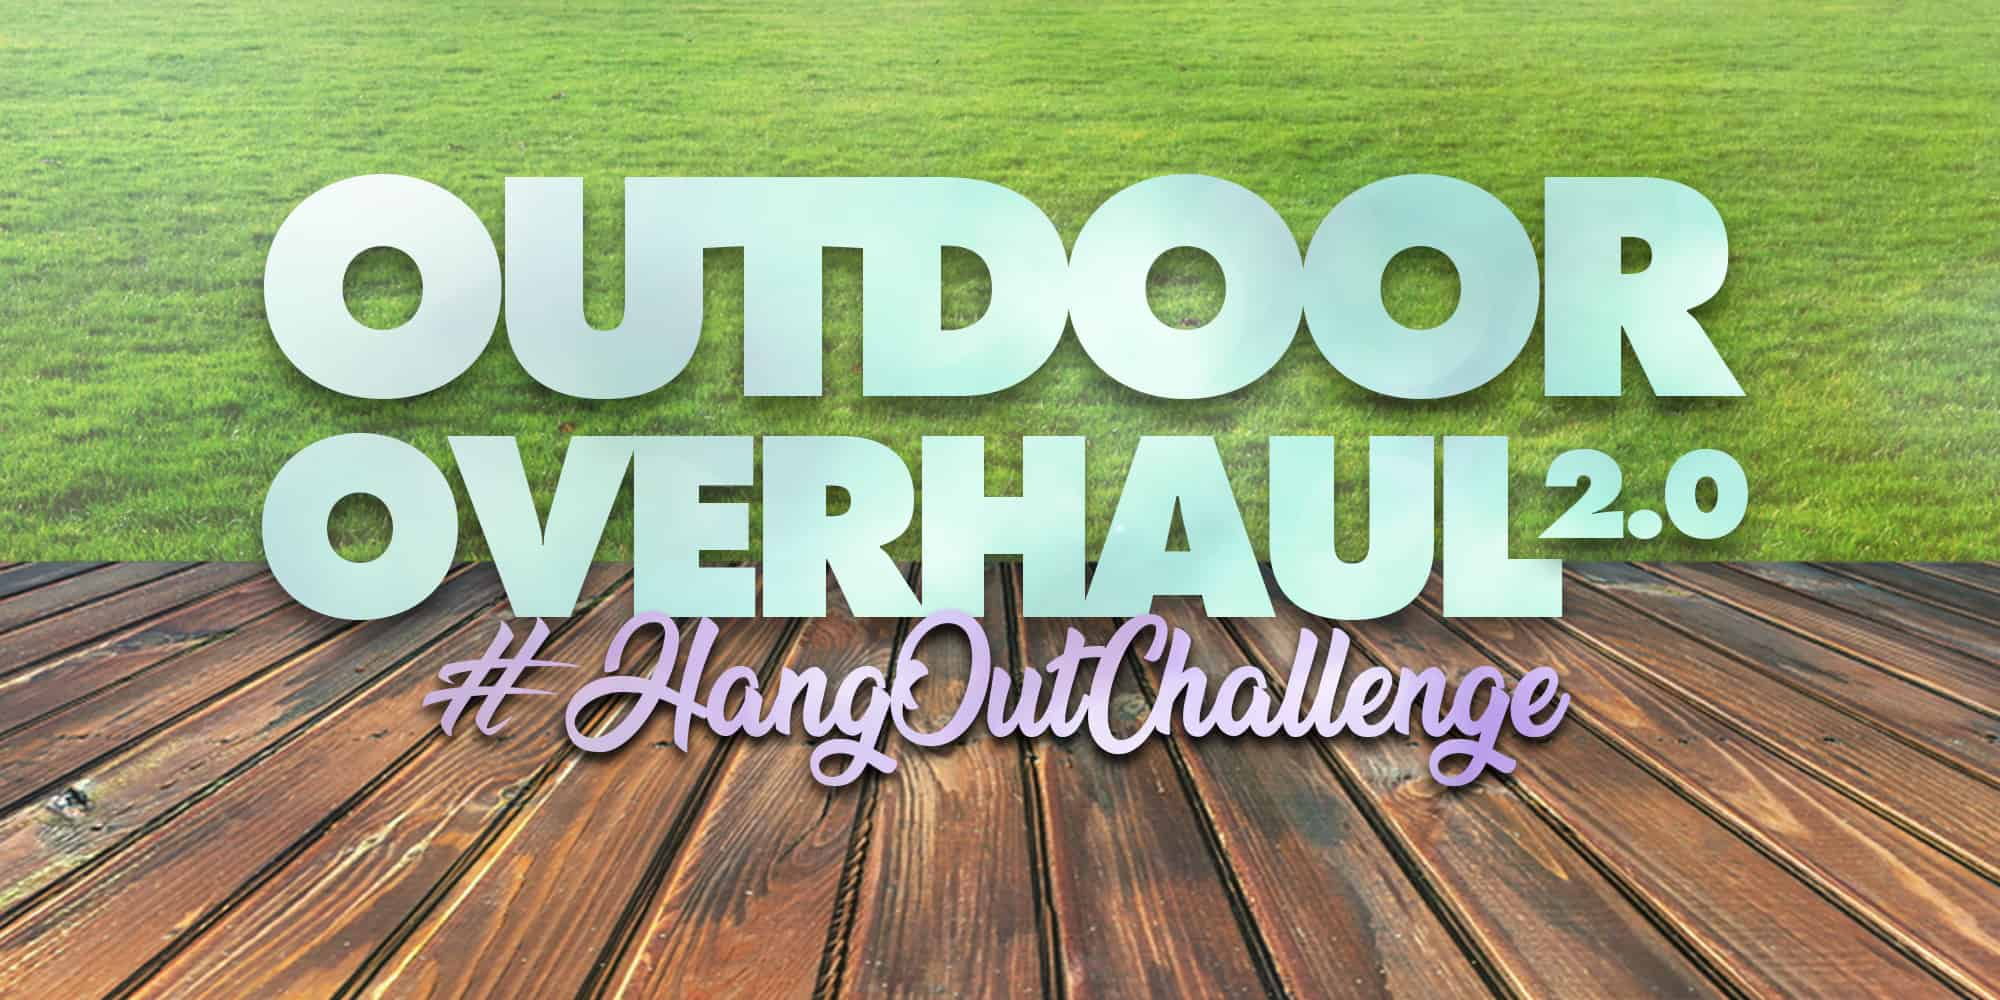 Outdoor Overhaul 2.0 #hangoutchallenge